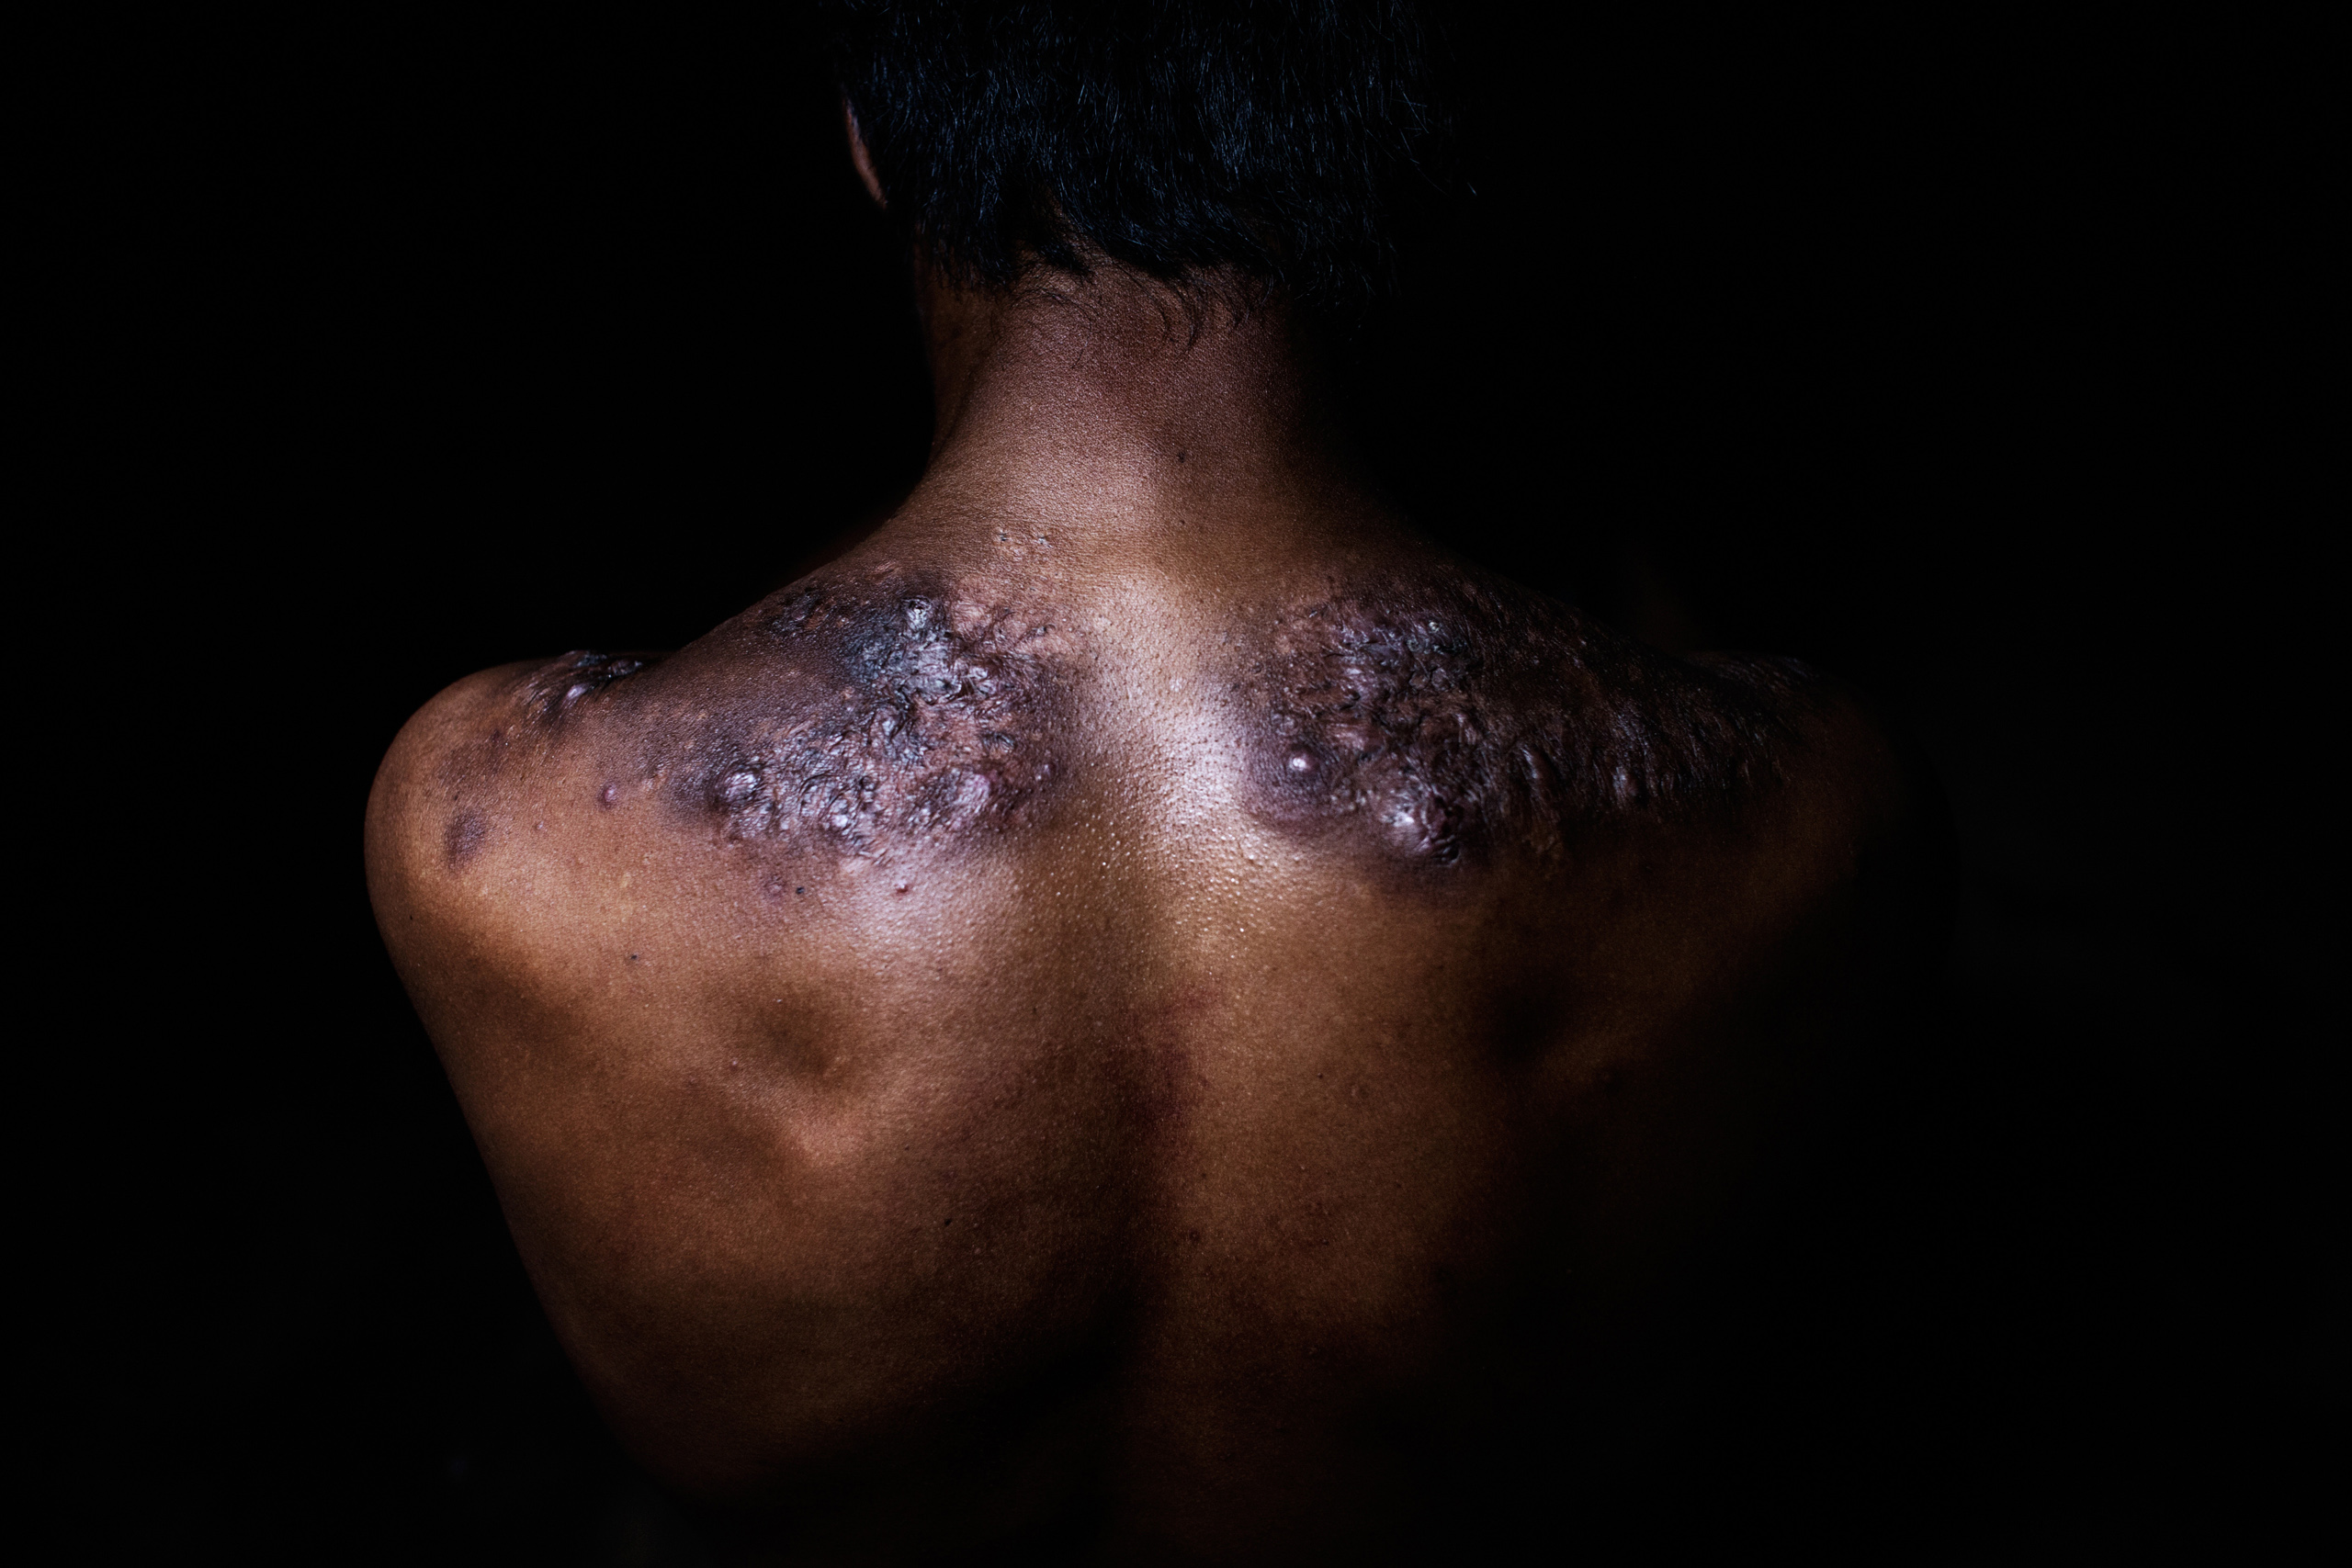 Suwono, 33, shows damage to his back due to carrying the heavy loads, Oct. 30, 2014.